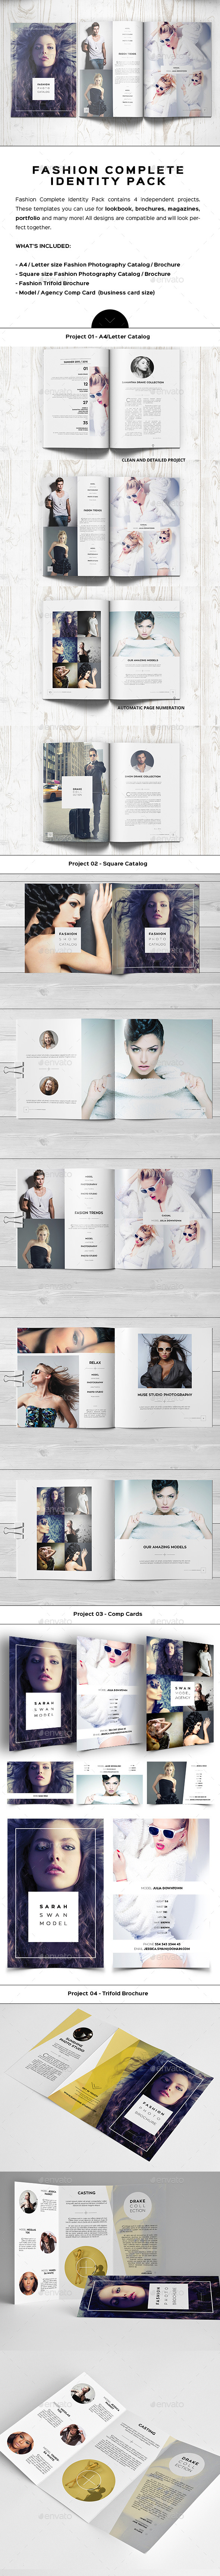 Fashion Complete Identity Pack - Catalogs Brochures